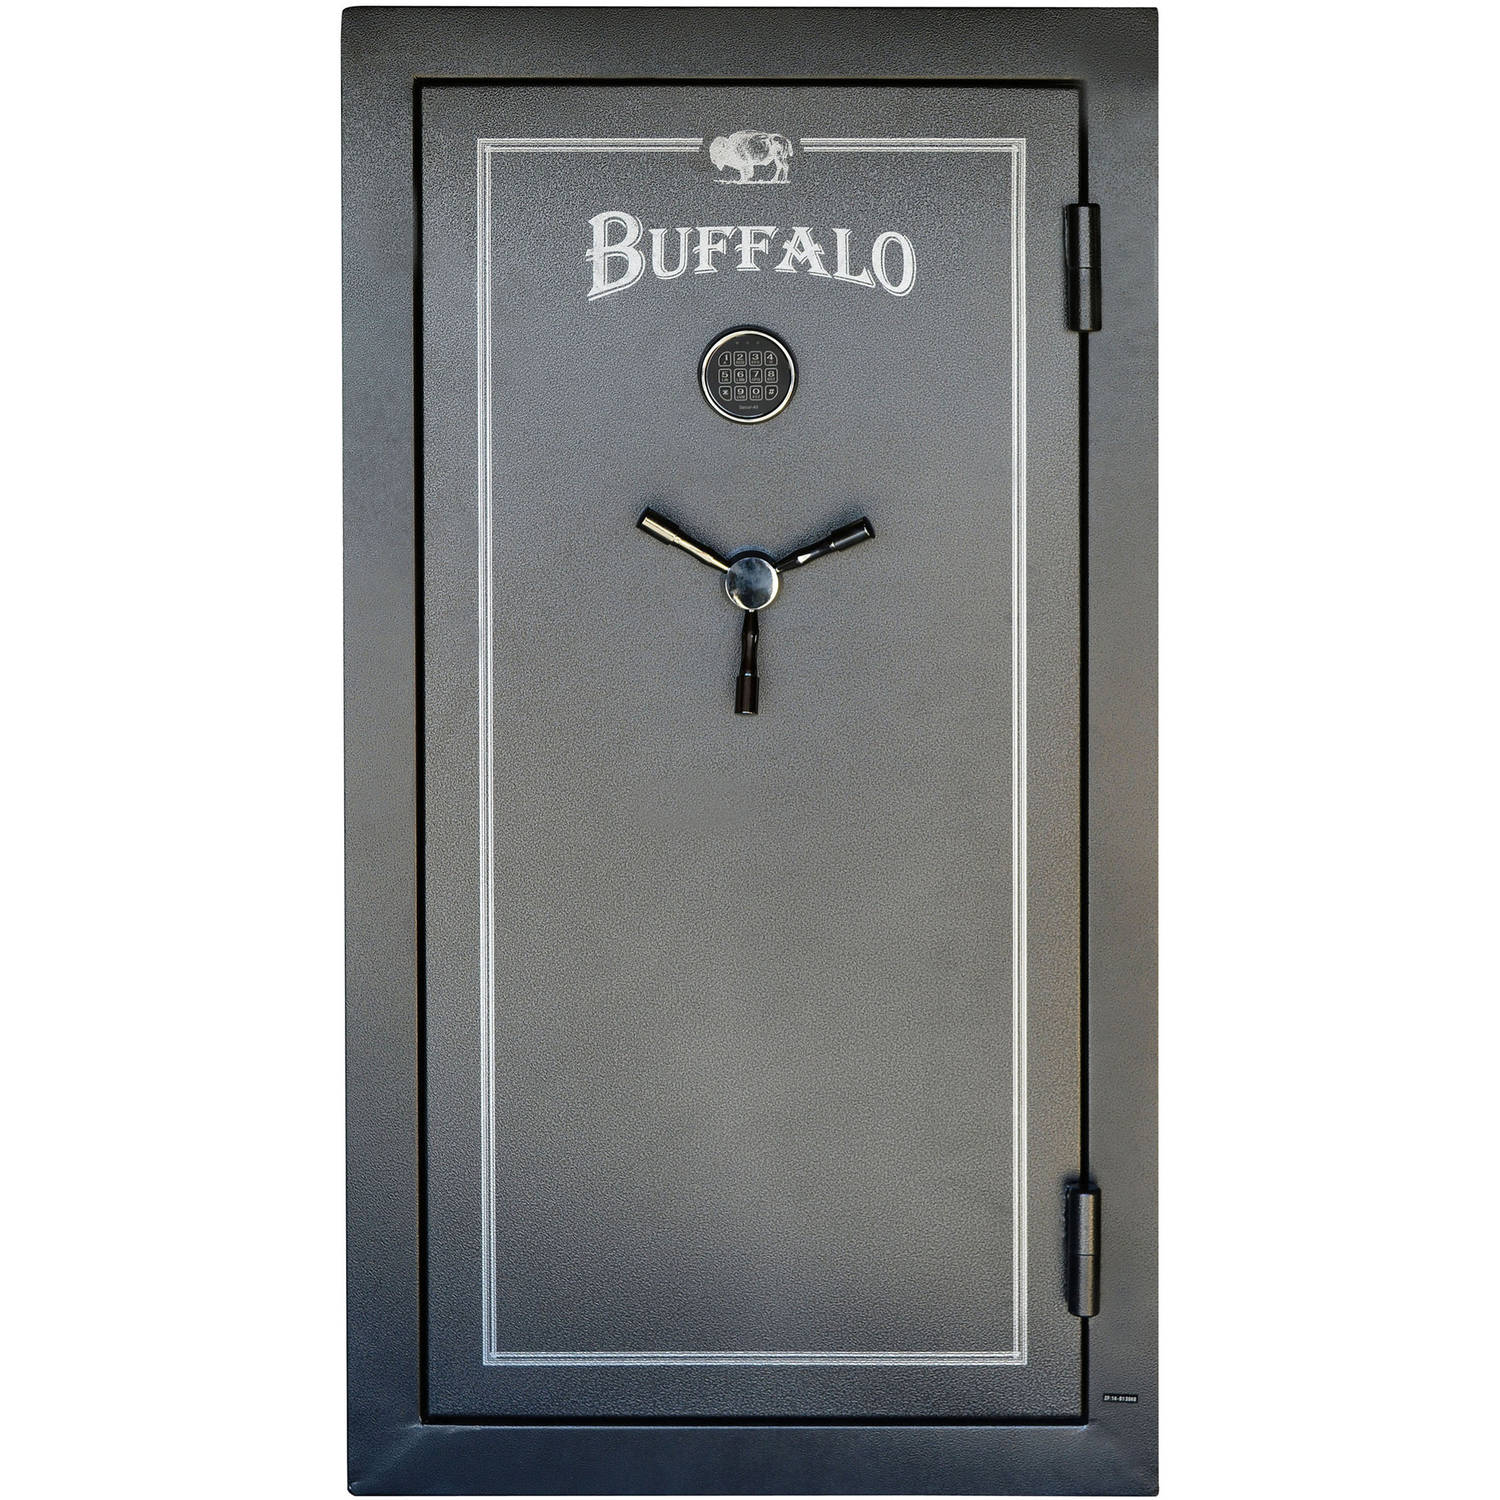 Buffalo 32 Rifle Capacity Gun Safe with Door Organizer by Generic